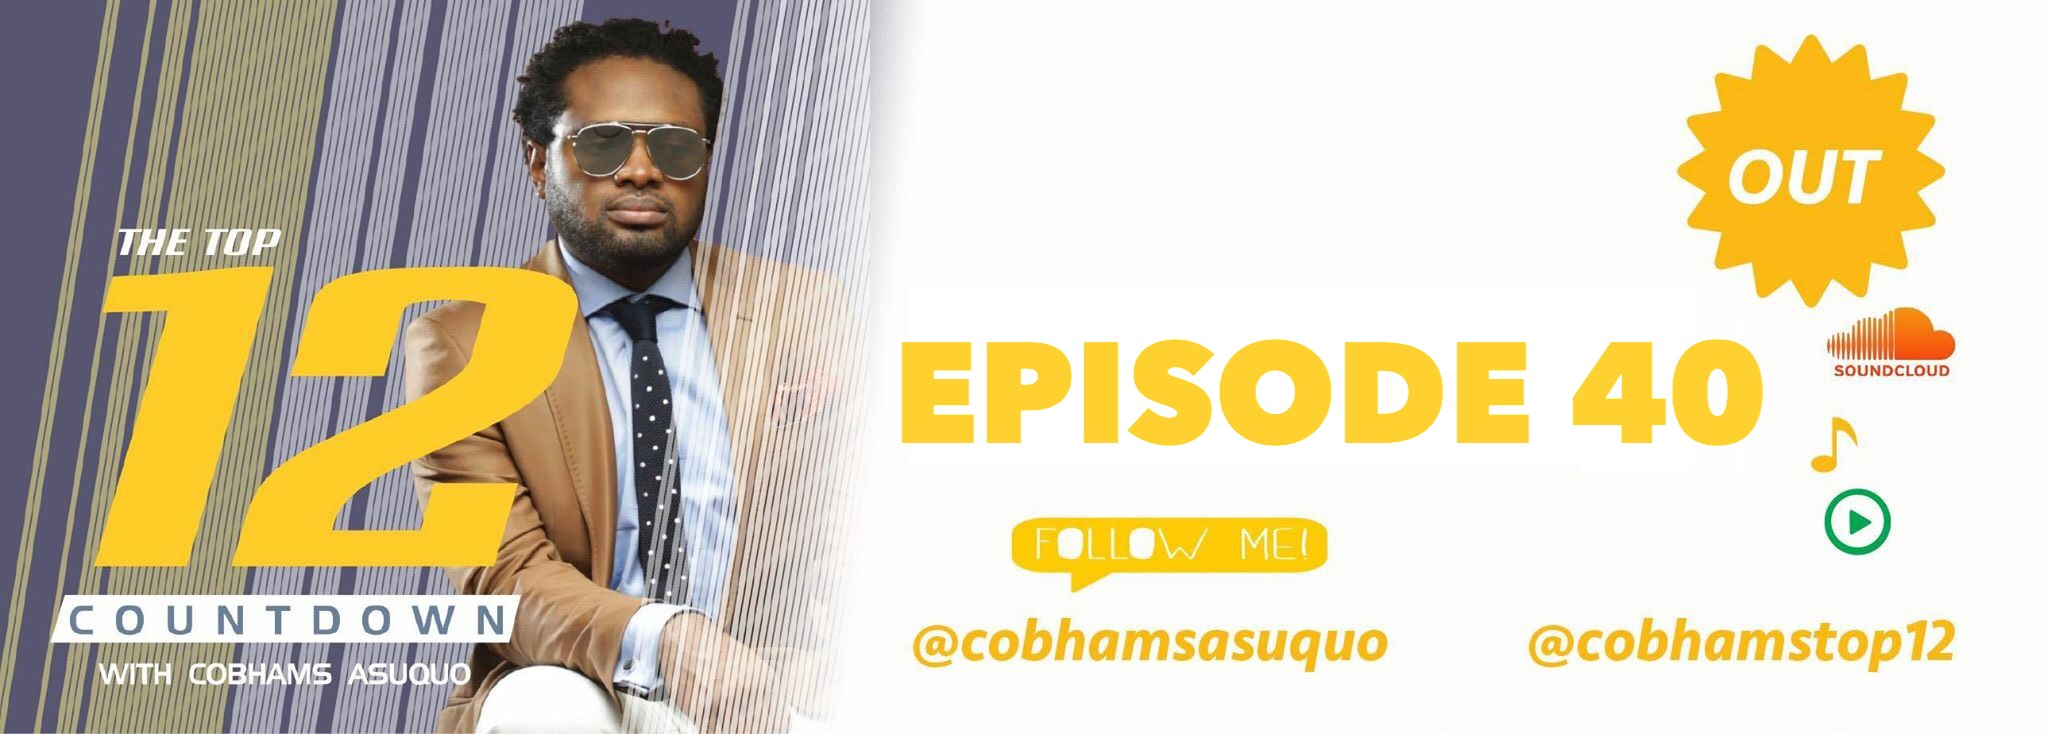 The Top 12 Countdown With Cobhams Asuquo – Ep 40